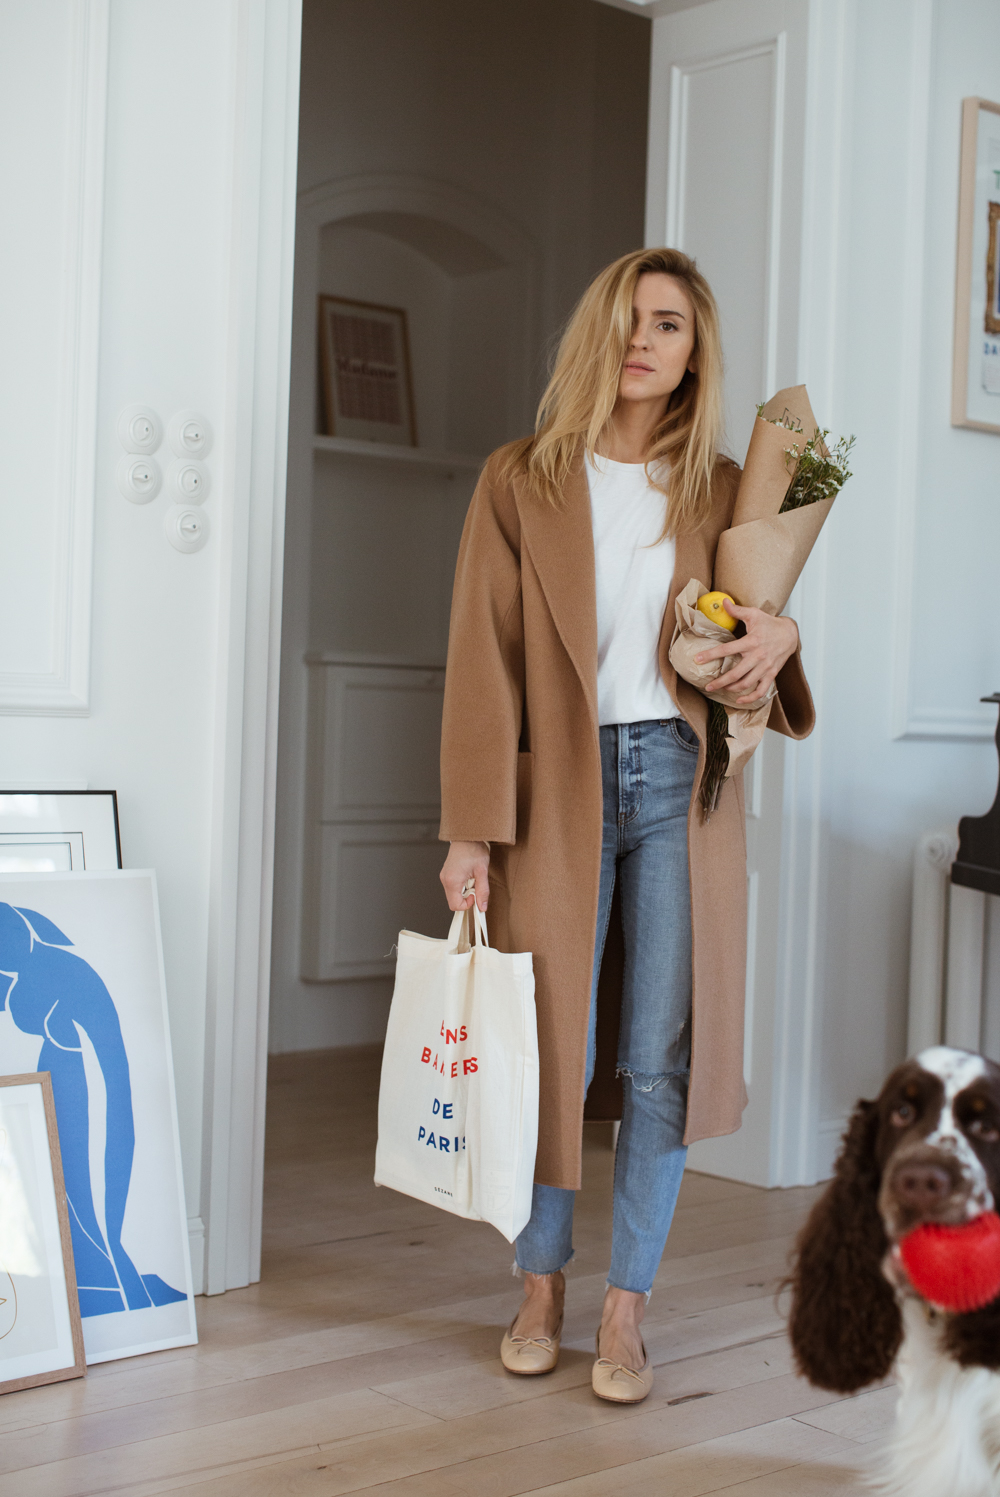 This Fall Outfit Is Perfect for Running Errands In Style — Camel Coat, Raw-Hem Jeans, and Beige Ballet Flats